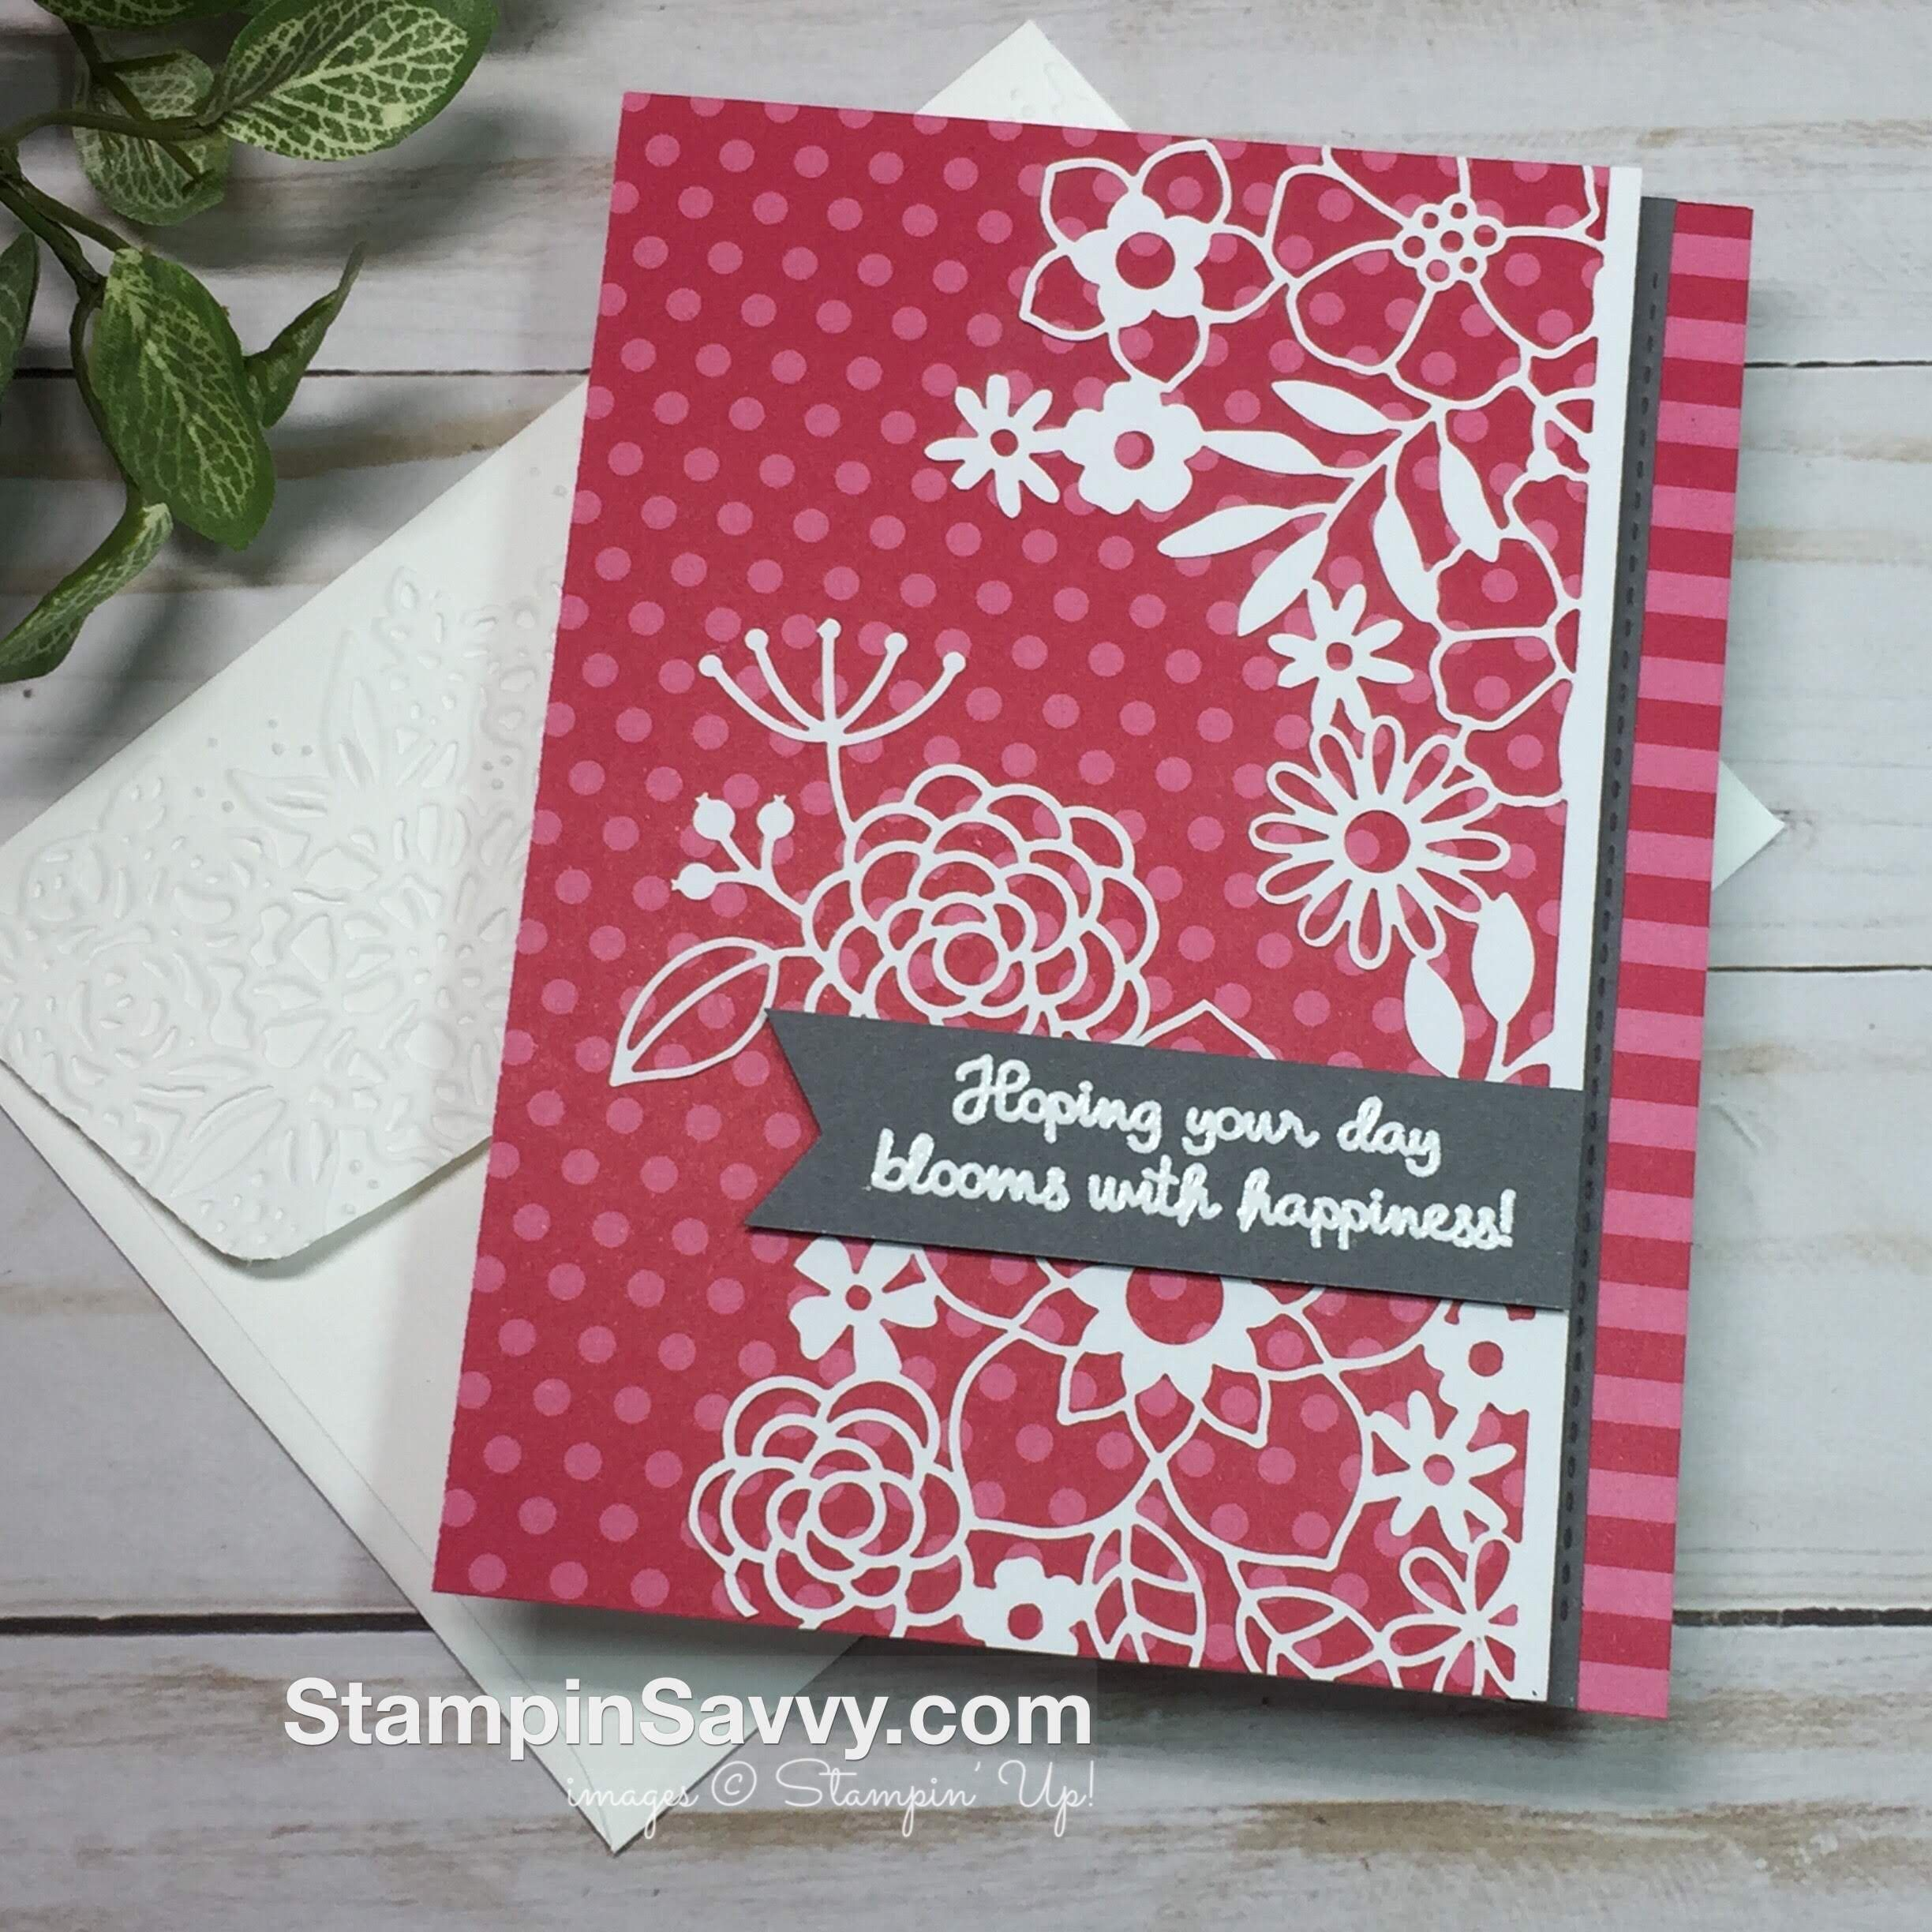 Delightfully Detailed Card In 3 Easy Steps With Savvy Tips Simple Birthday Cards Stamping Up Cards Paper Cards